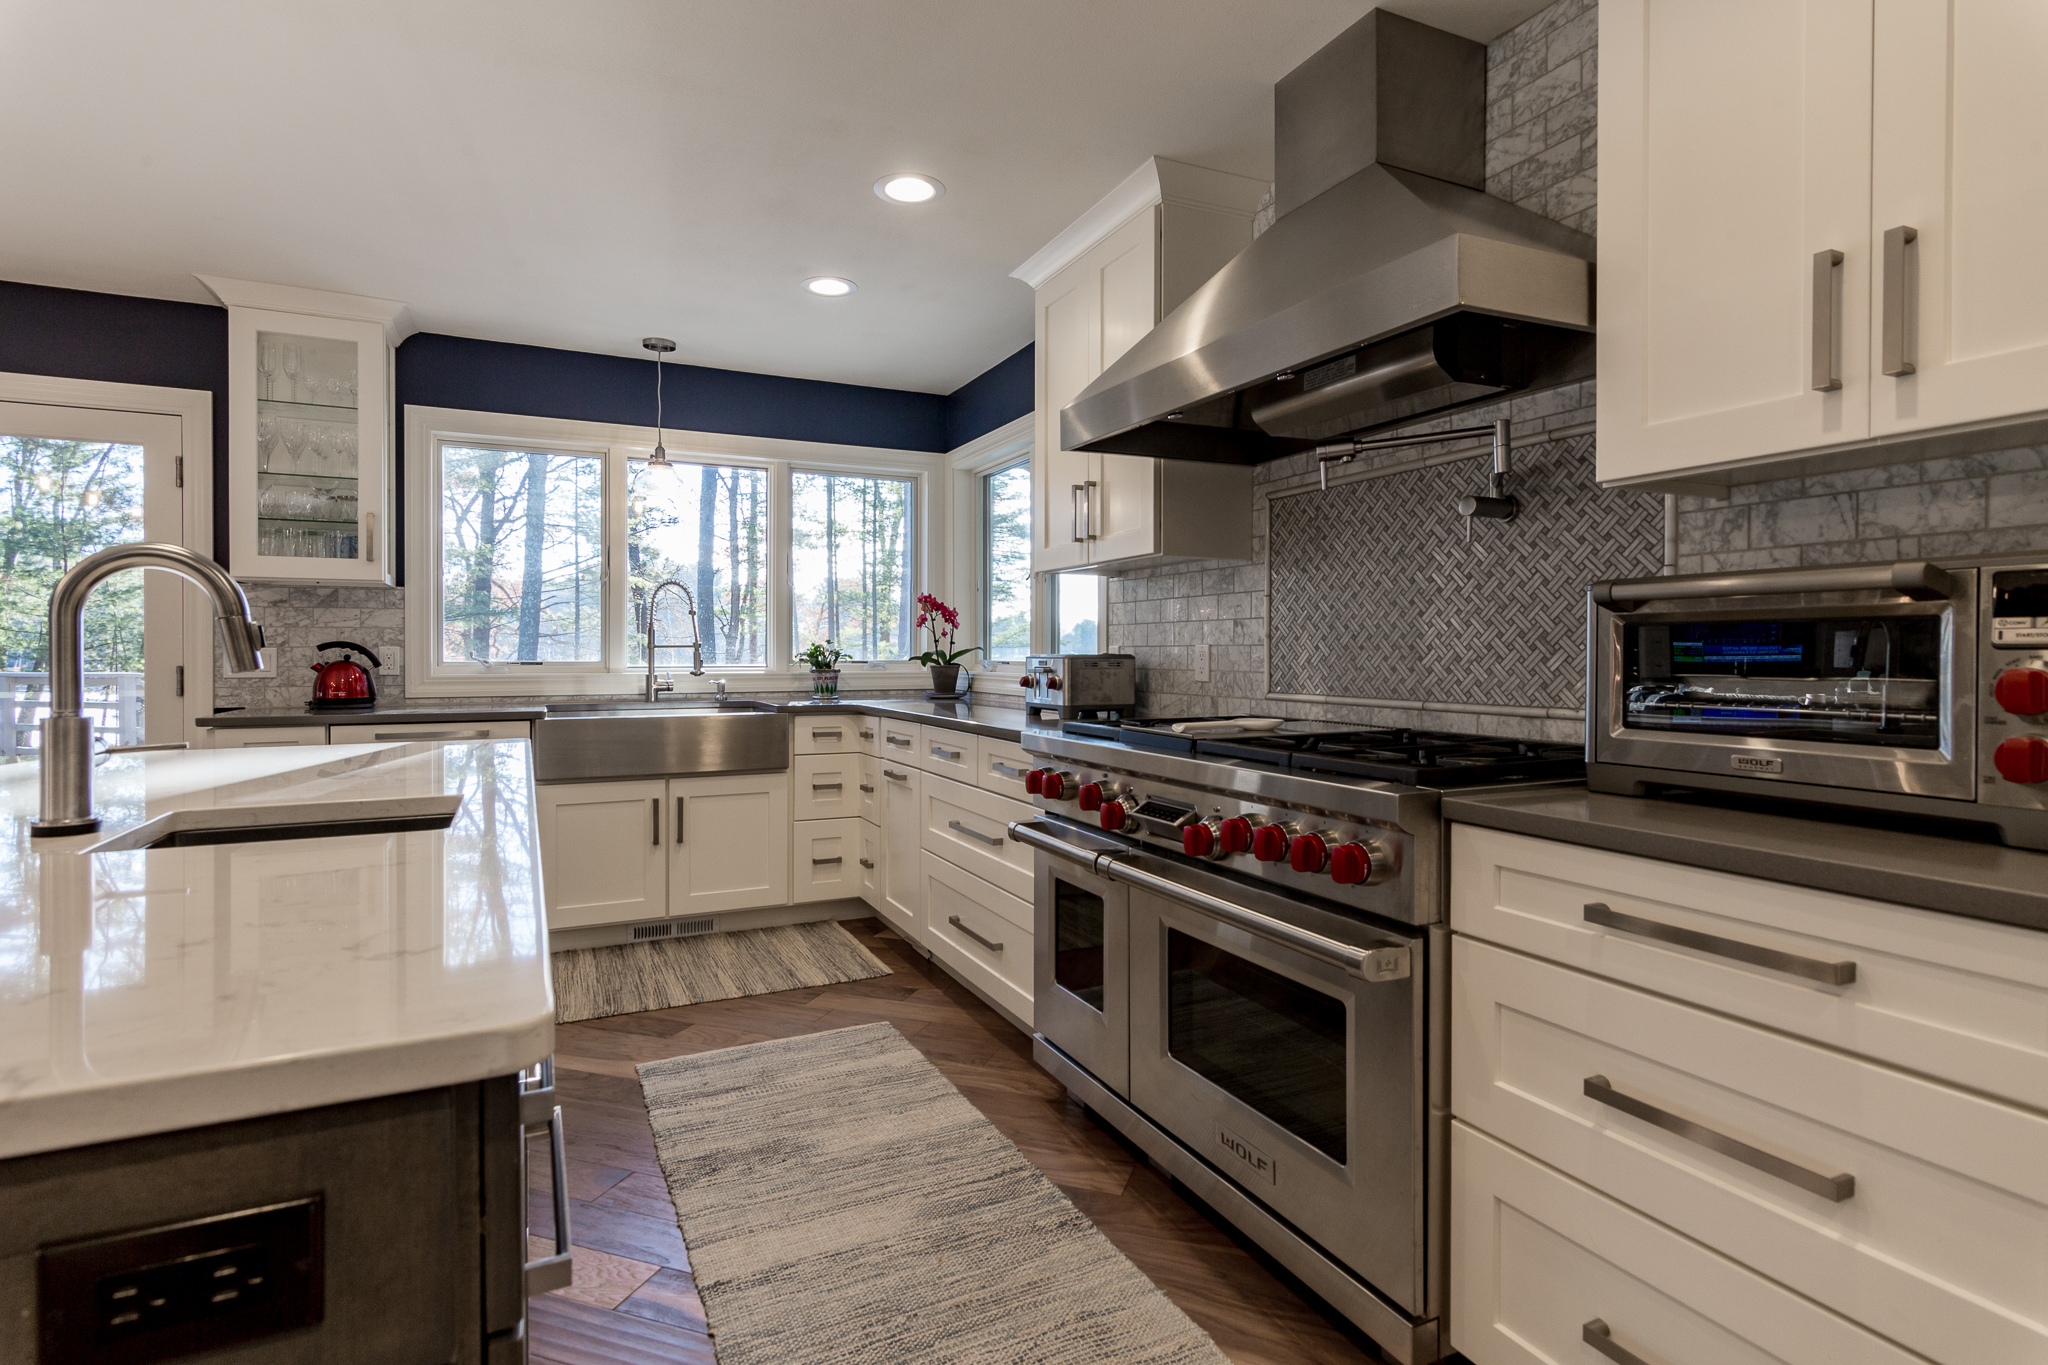 Swita Cabinetry Excellent Choice In Kitchen And Bathroom Cabinetry